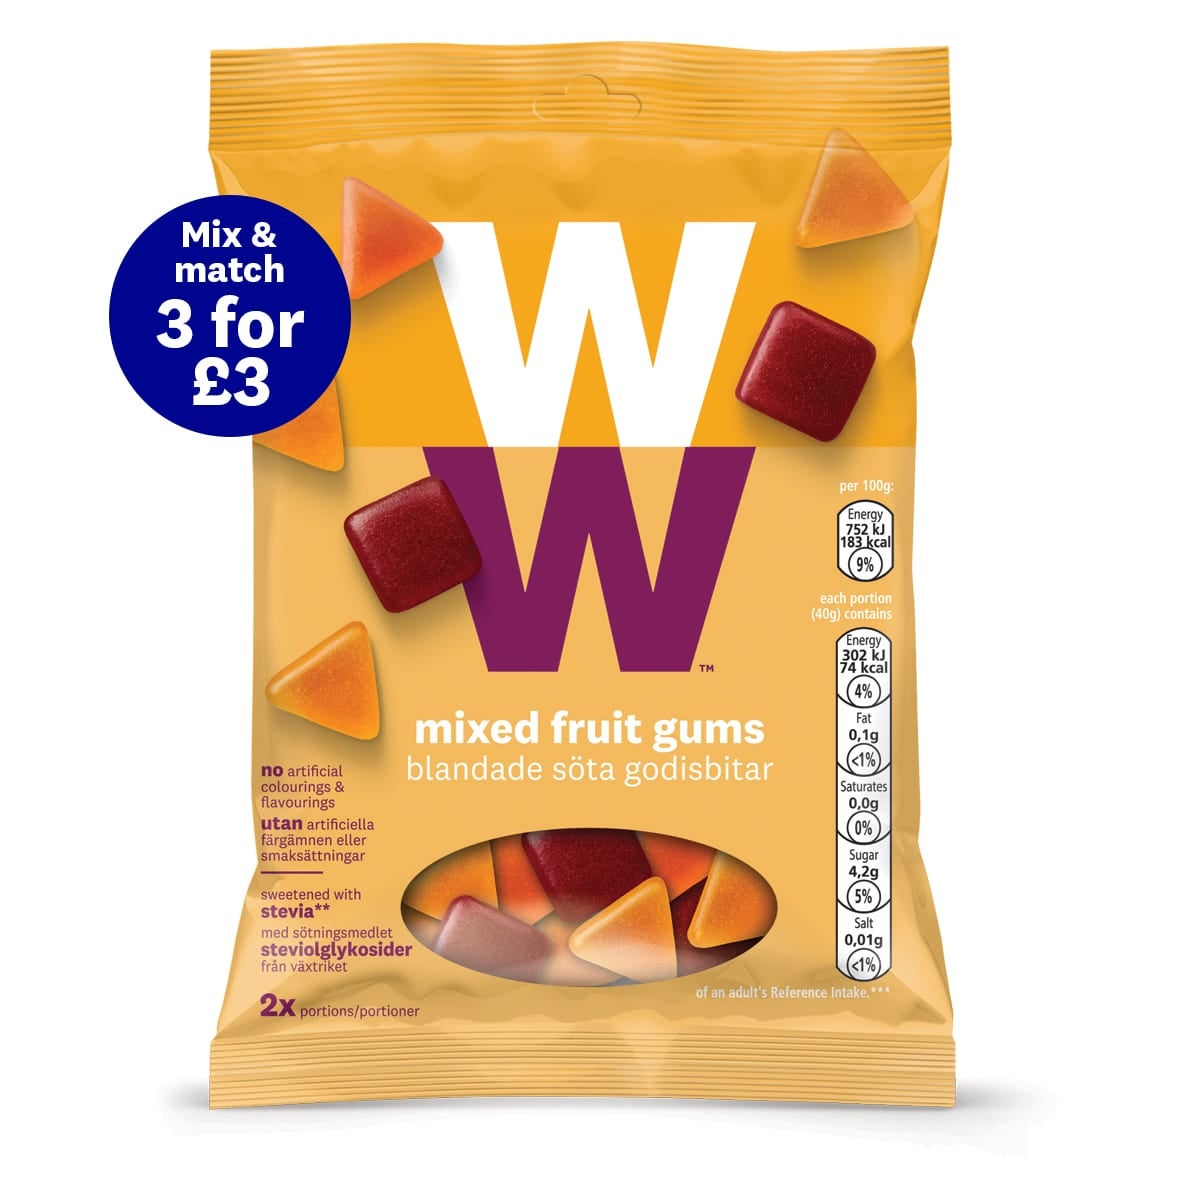 WW Fruit Gums, chewy, fruity fix, on-the-go treat, 2 SmartPoints®per portion (half a bag)